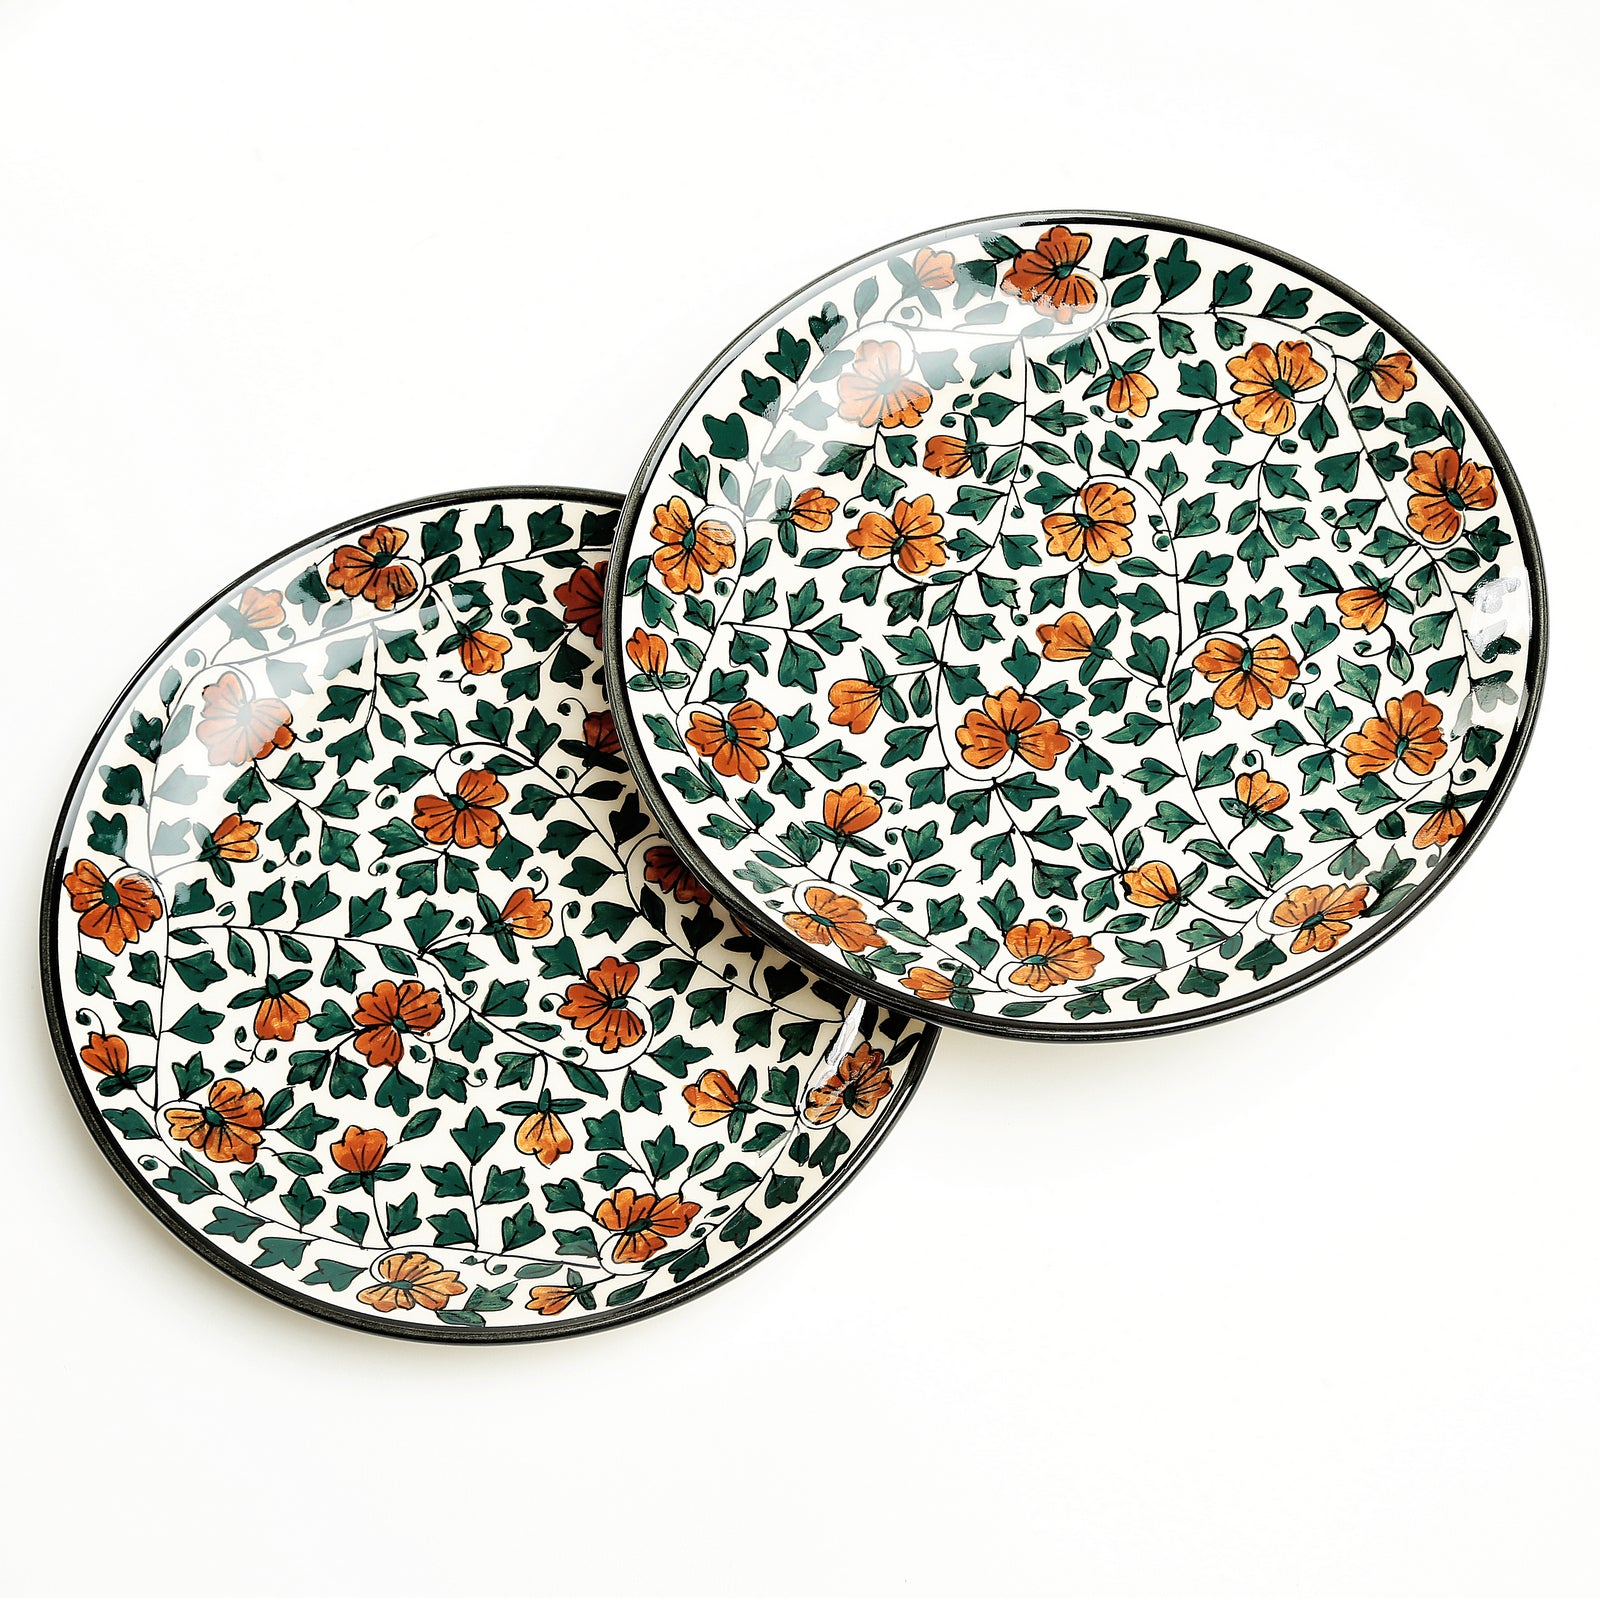 Nayeli Handpainted Dinner Plates - Set of 2